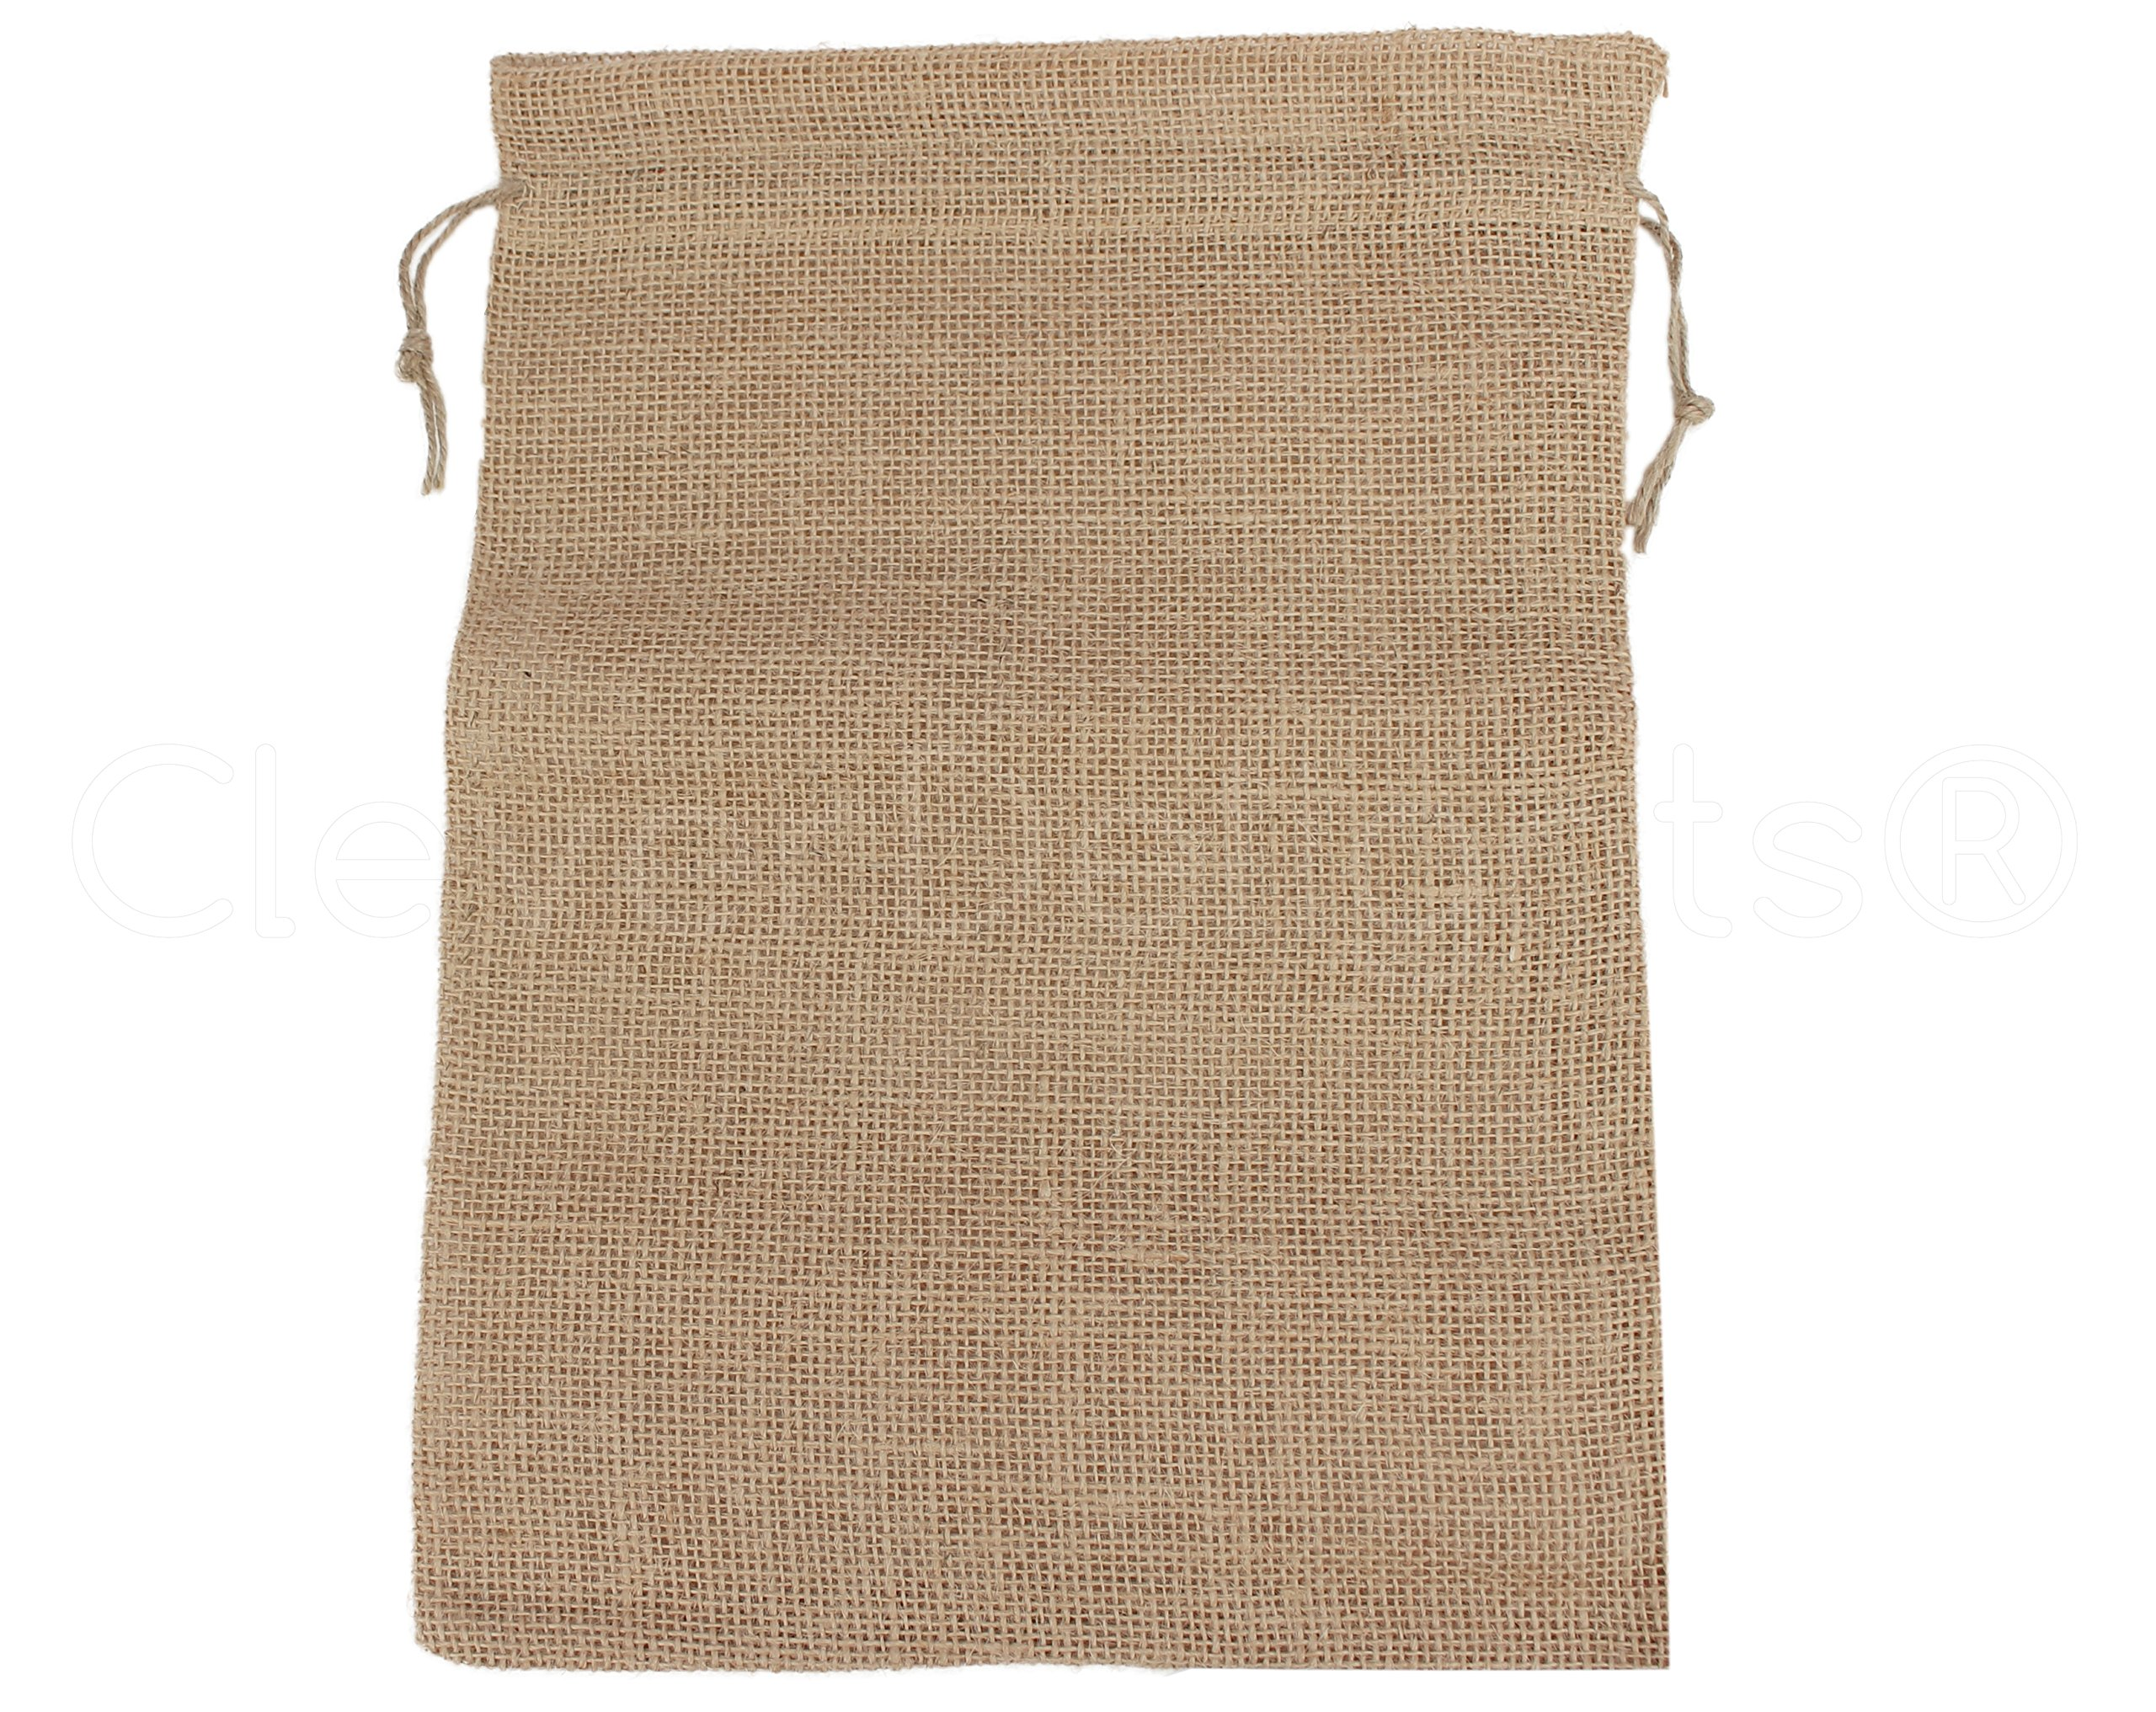 CleverDelights 10'' x 14'' Burlap Bags with Natural Jute Drawstring - 10 Pack - Large Burlap Pouch Sack Favor Bag for Showers Weddings Parties and Receptions - 10x14 inch by CleverDelights (Image #2)